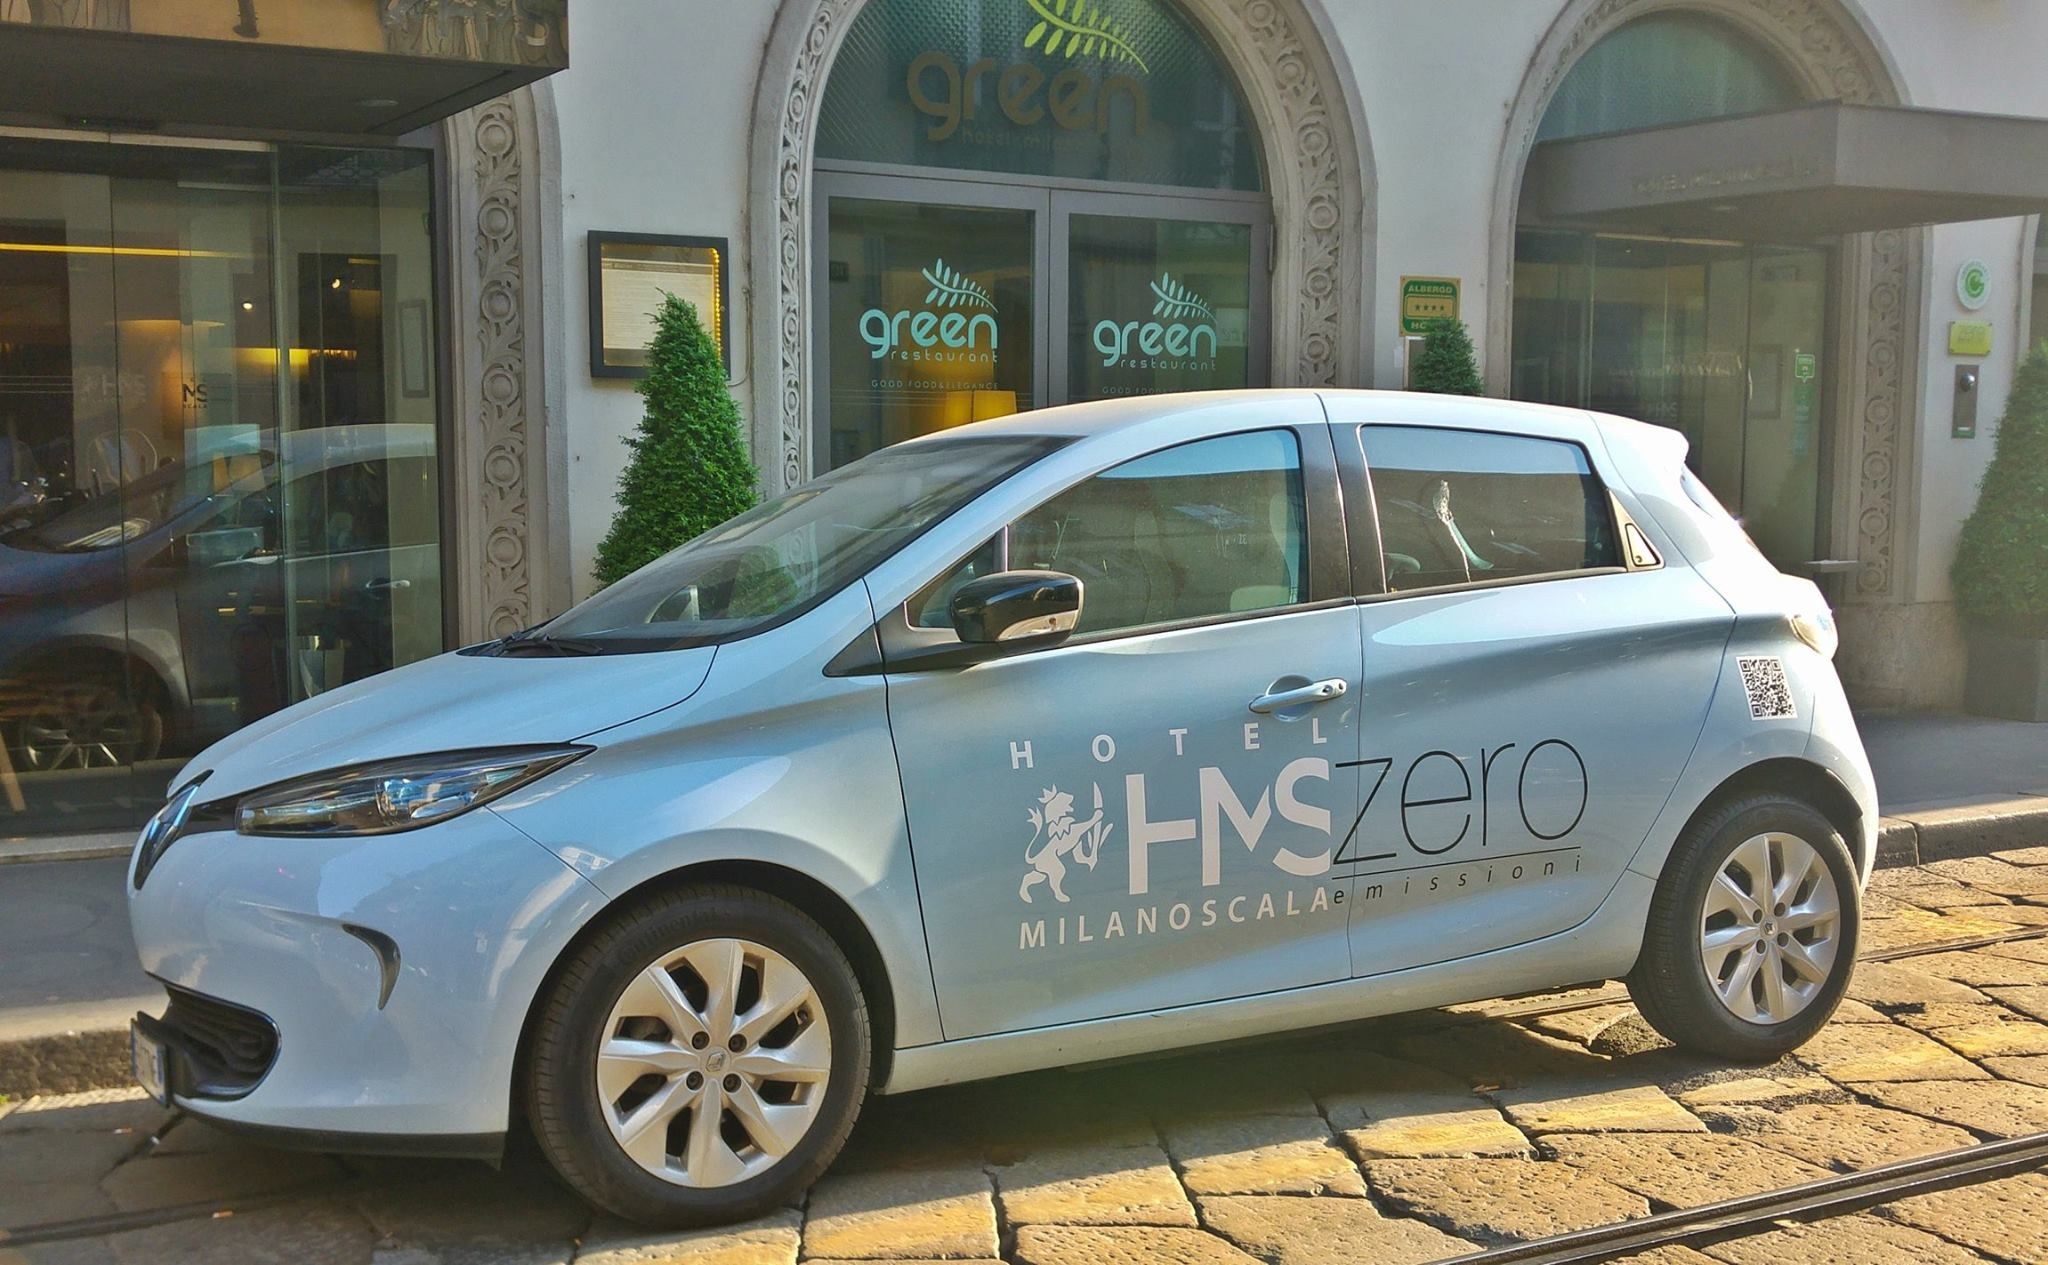 #ECOHOTELS #EV #SWD #GREEN2STAY  Hotel Milano ScalaHere's our new courtesy electric car. Always ZERO EMISSIONS, as our Hotel!  #milanoscala #preferredhotels #green   http://www.green2stay.com/uk-and-europe-eco-hotels